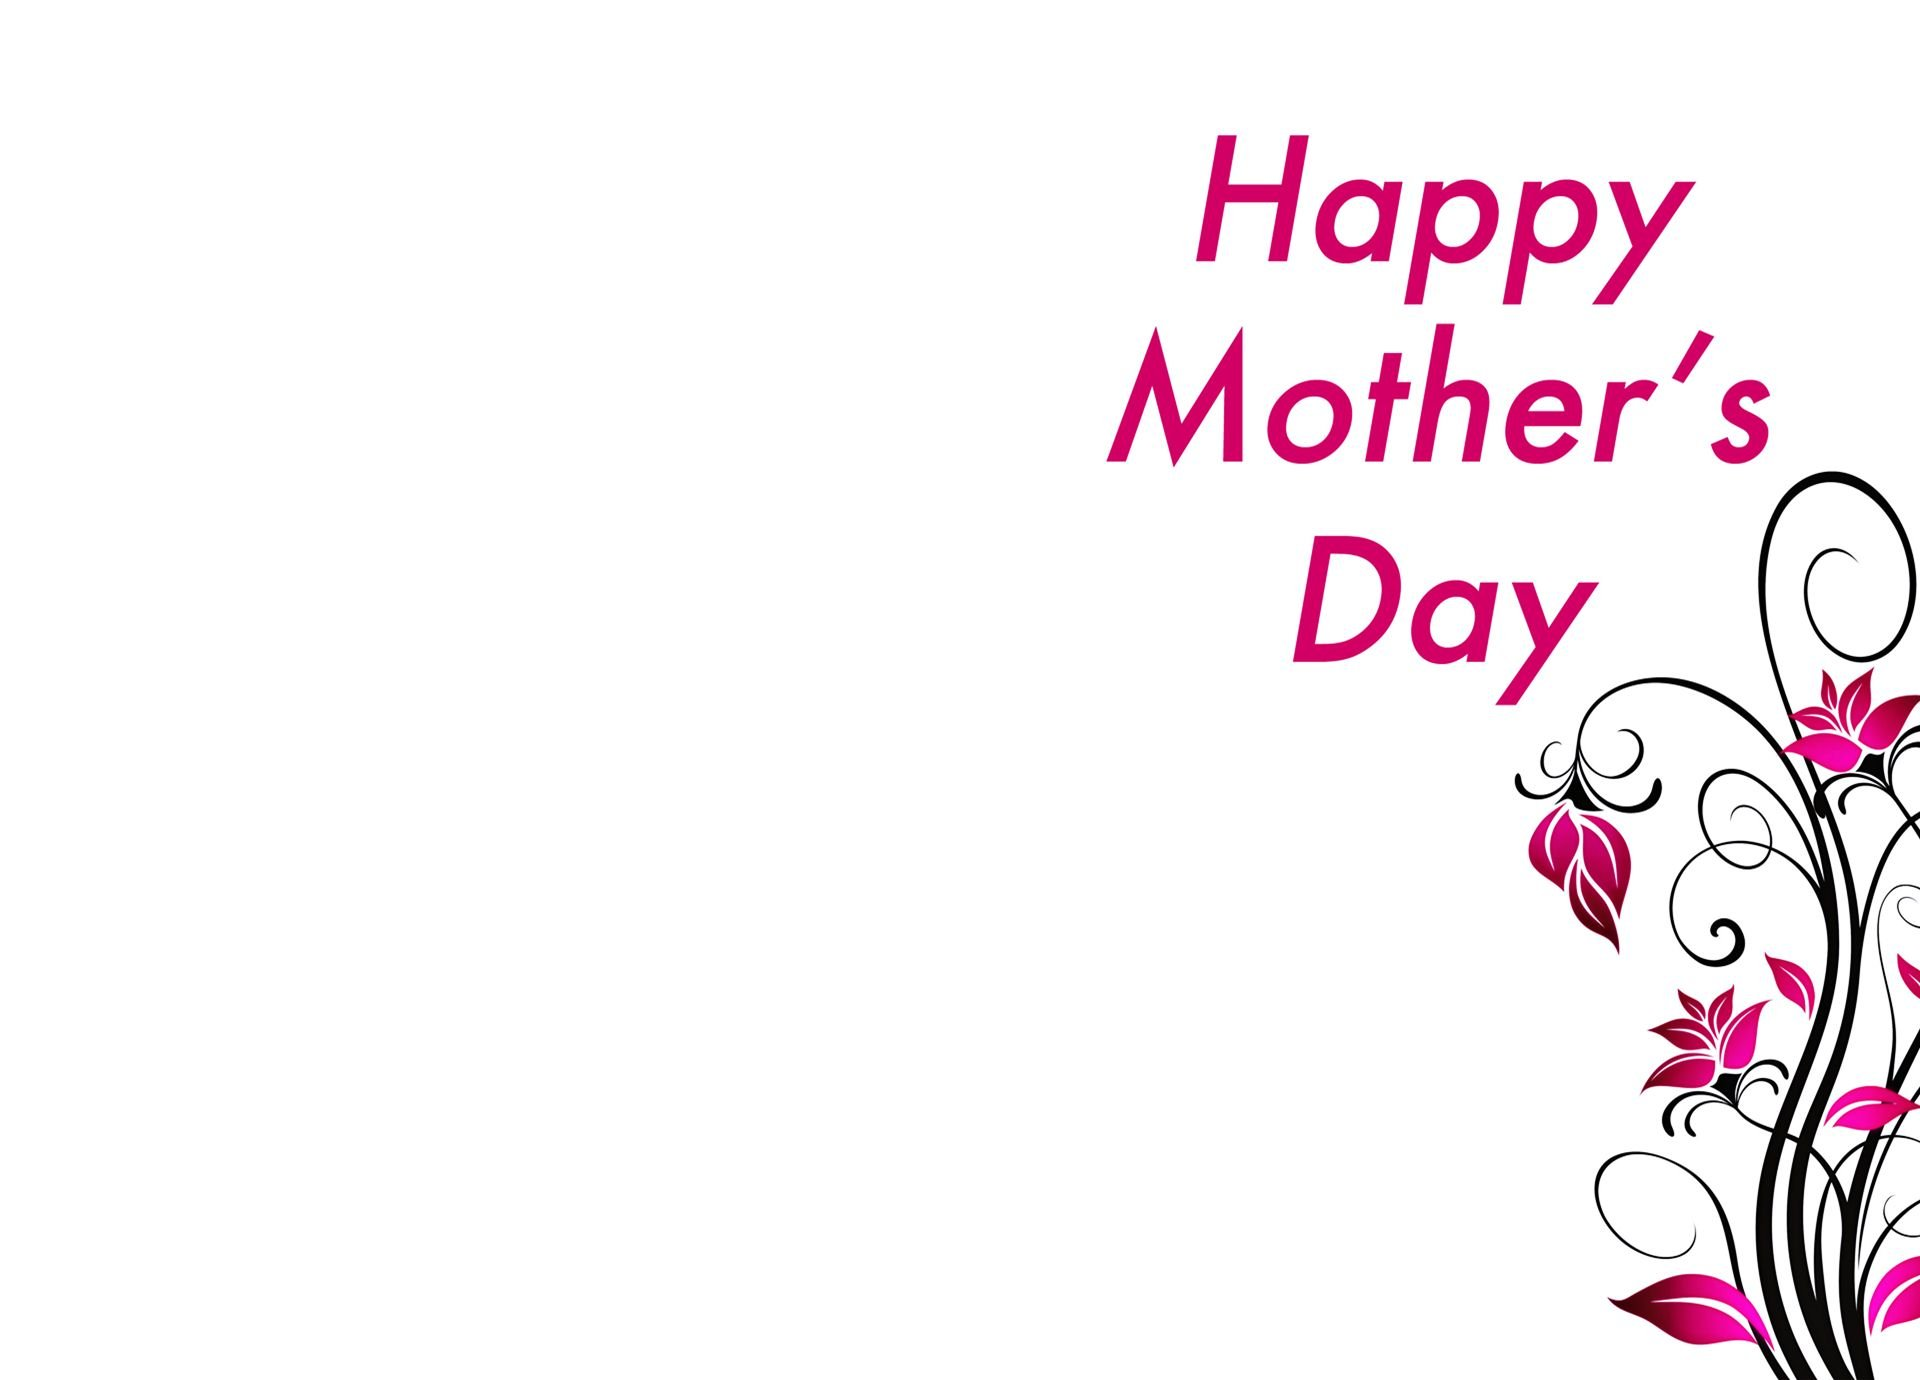 Mothers Day Cards Wallpaper 1920x1380